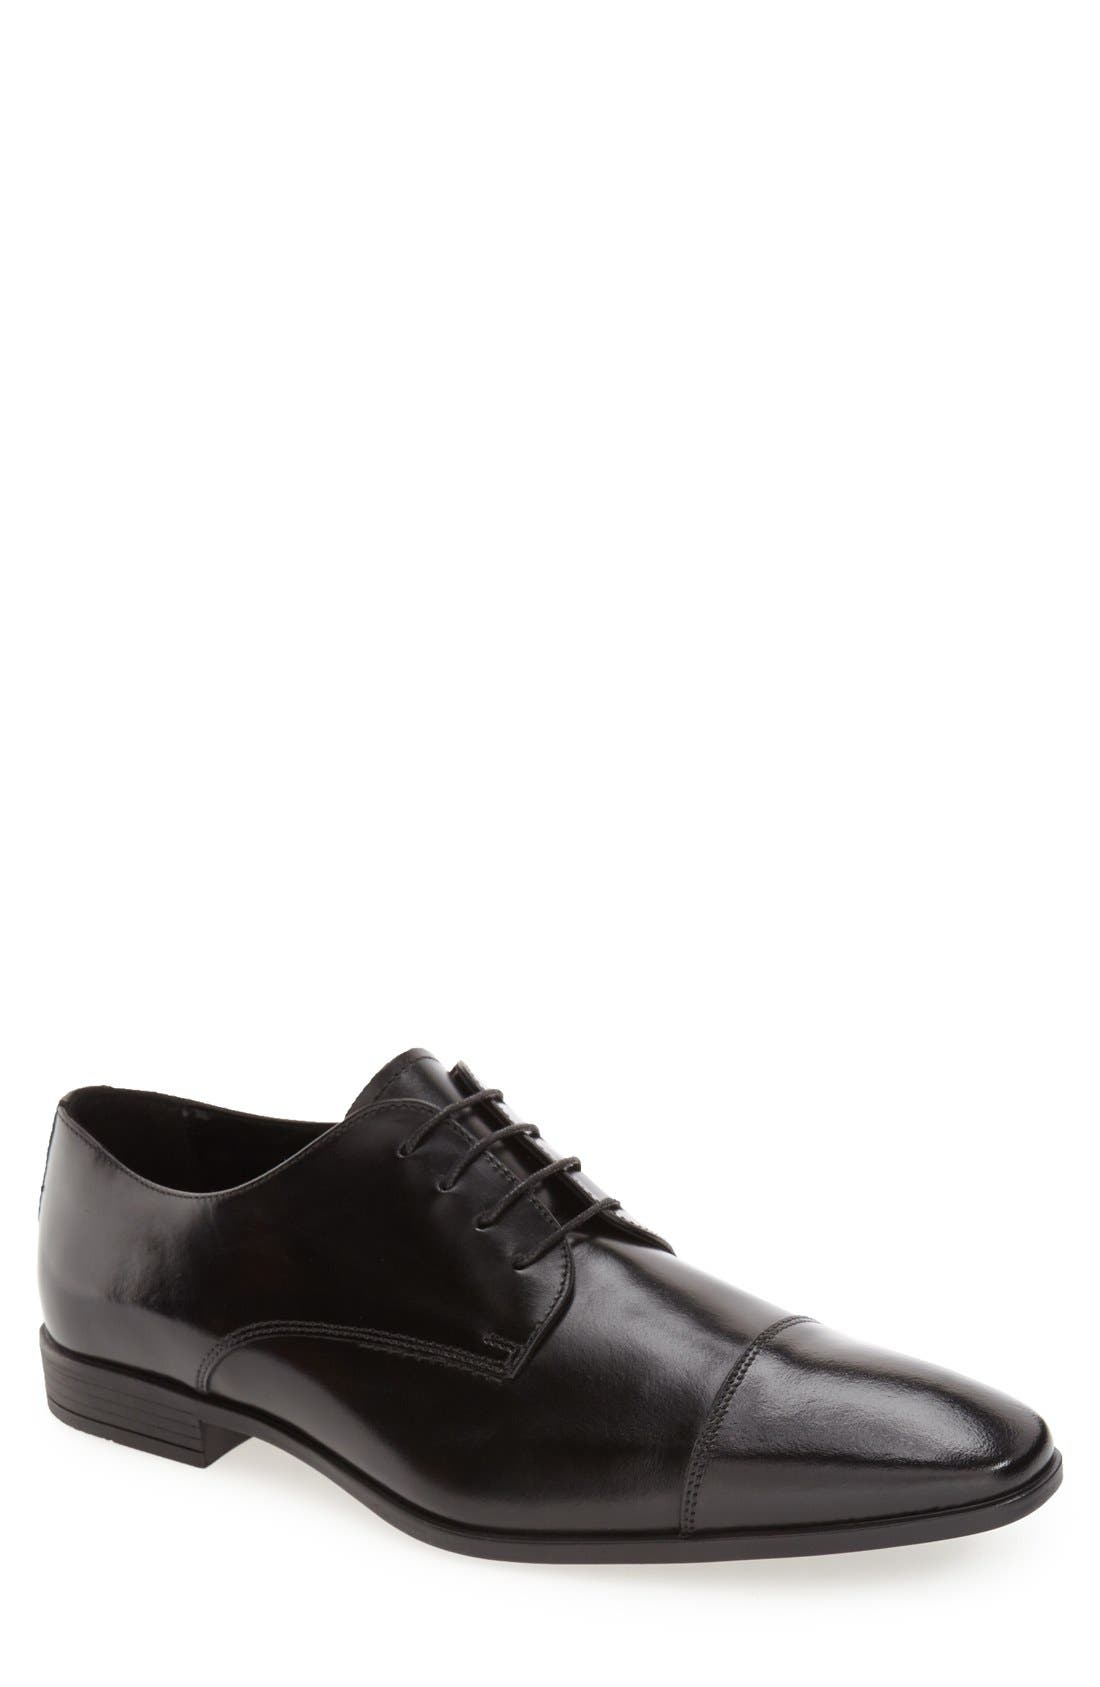 Alternate Image 1 Selected - The Rail 'Stark' Cap Toe Derby (Men)